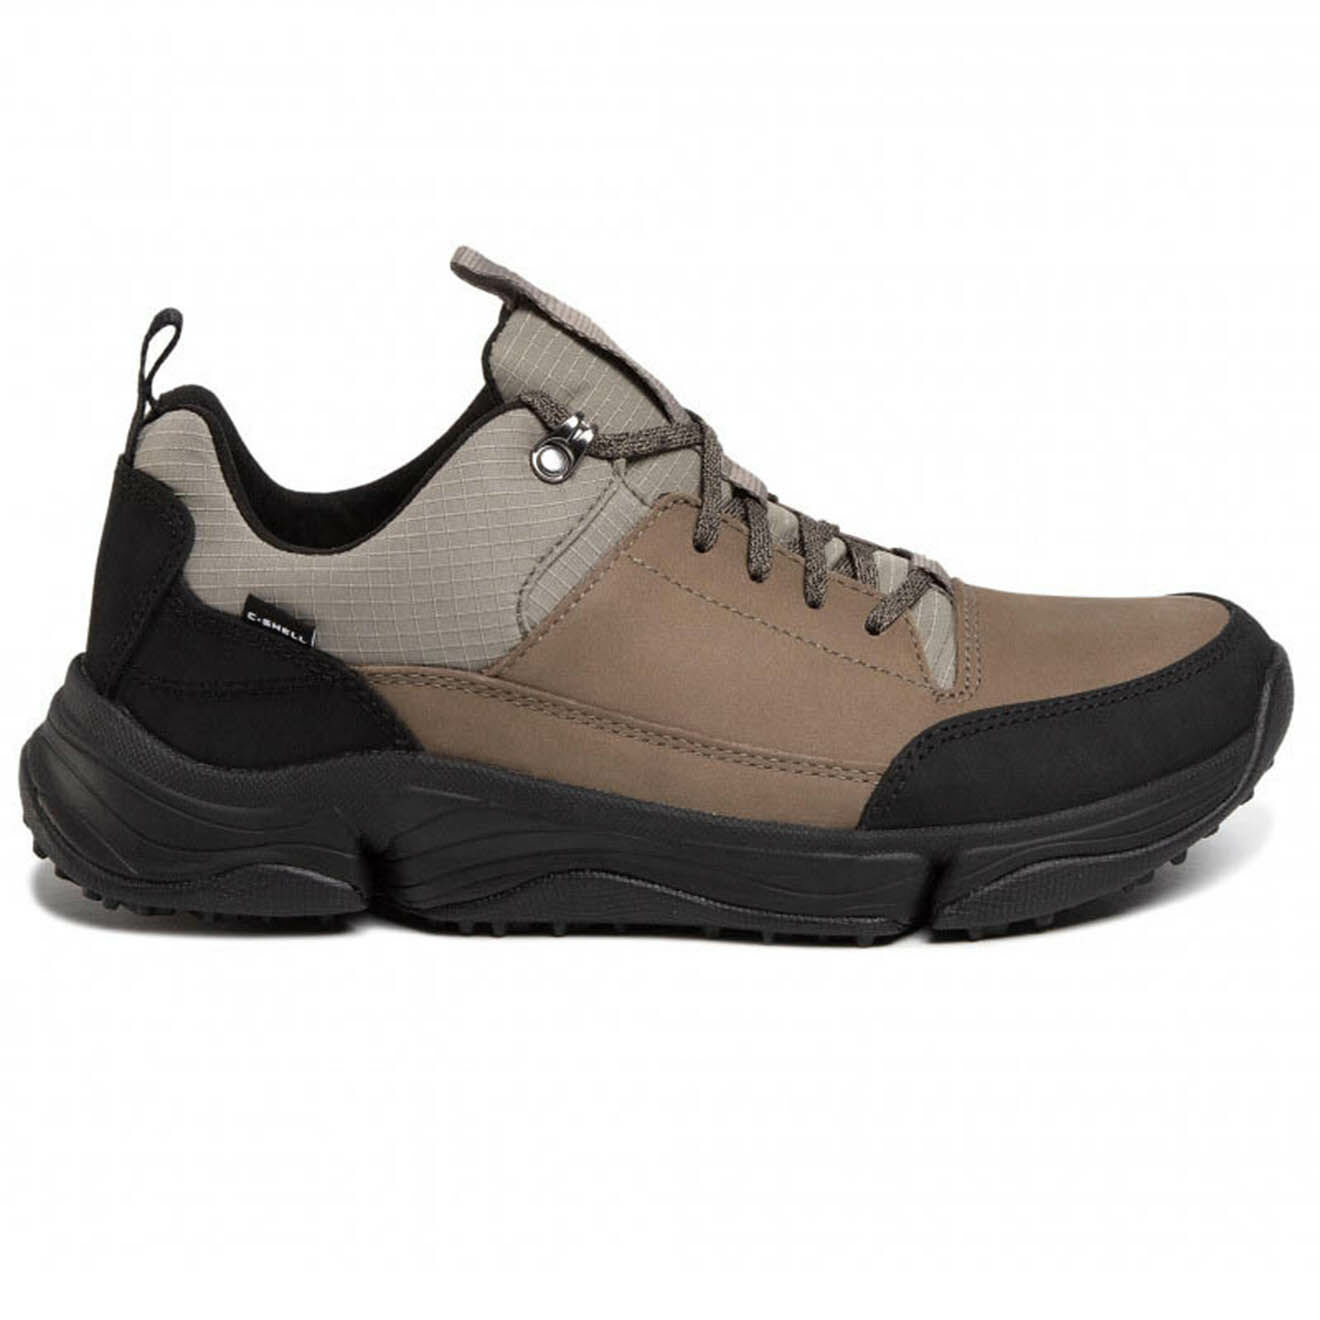 Sneakers Tri Path Walk noir/gris/marron - Clarks - Modalova